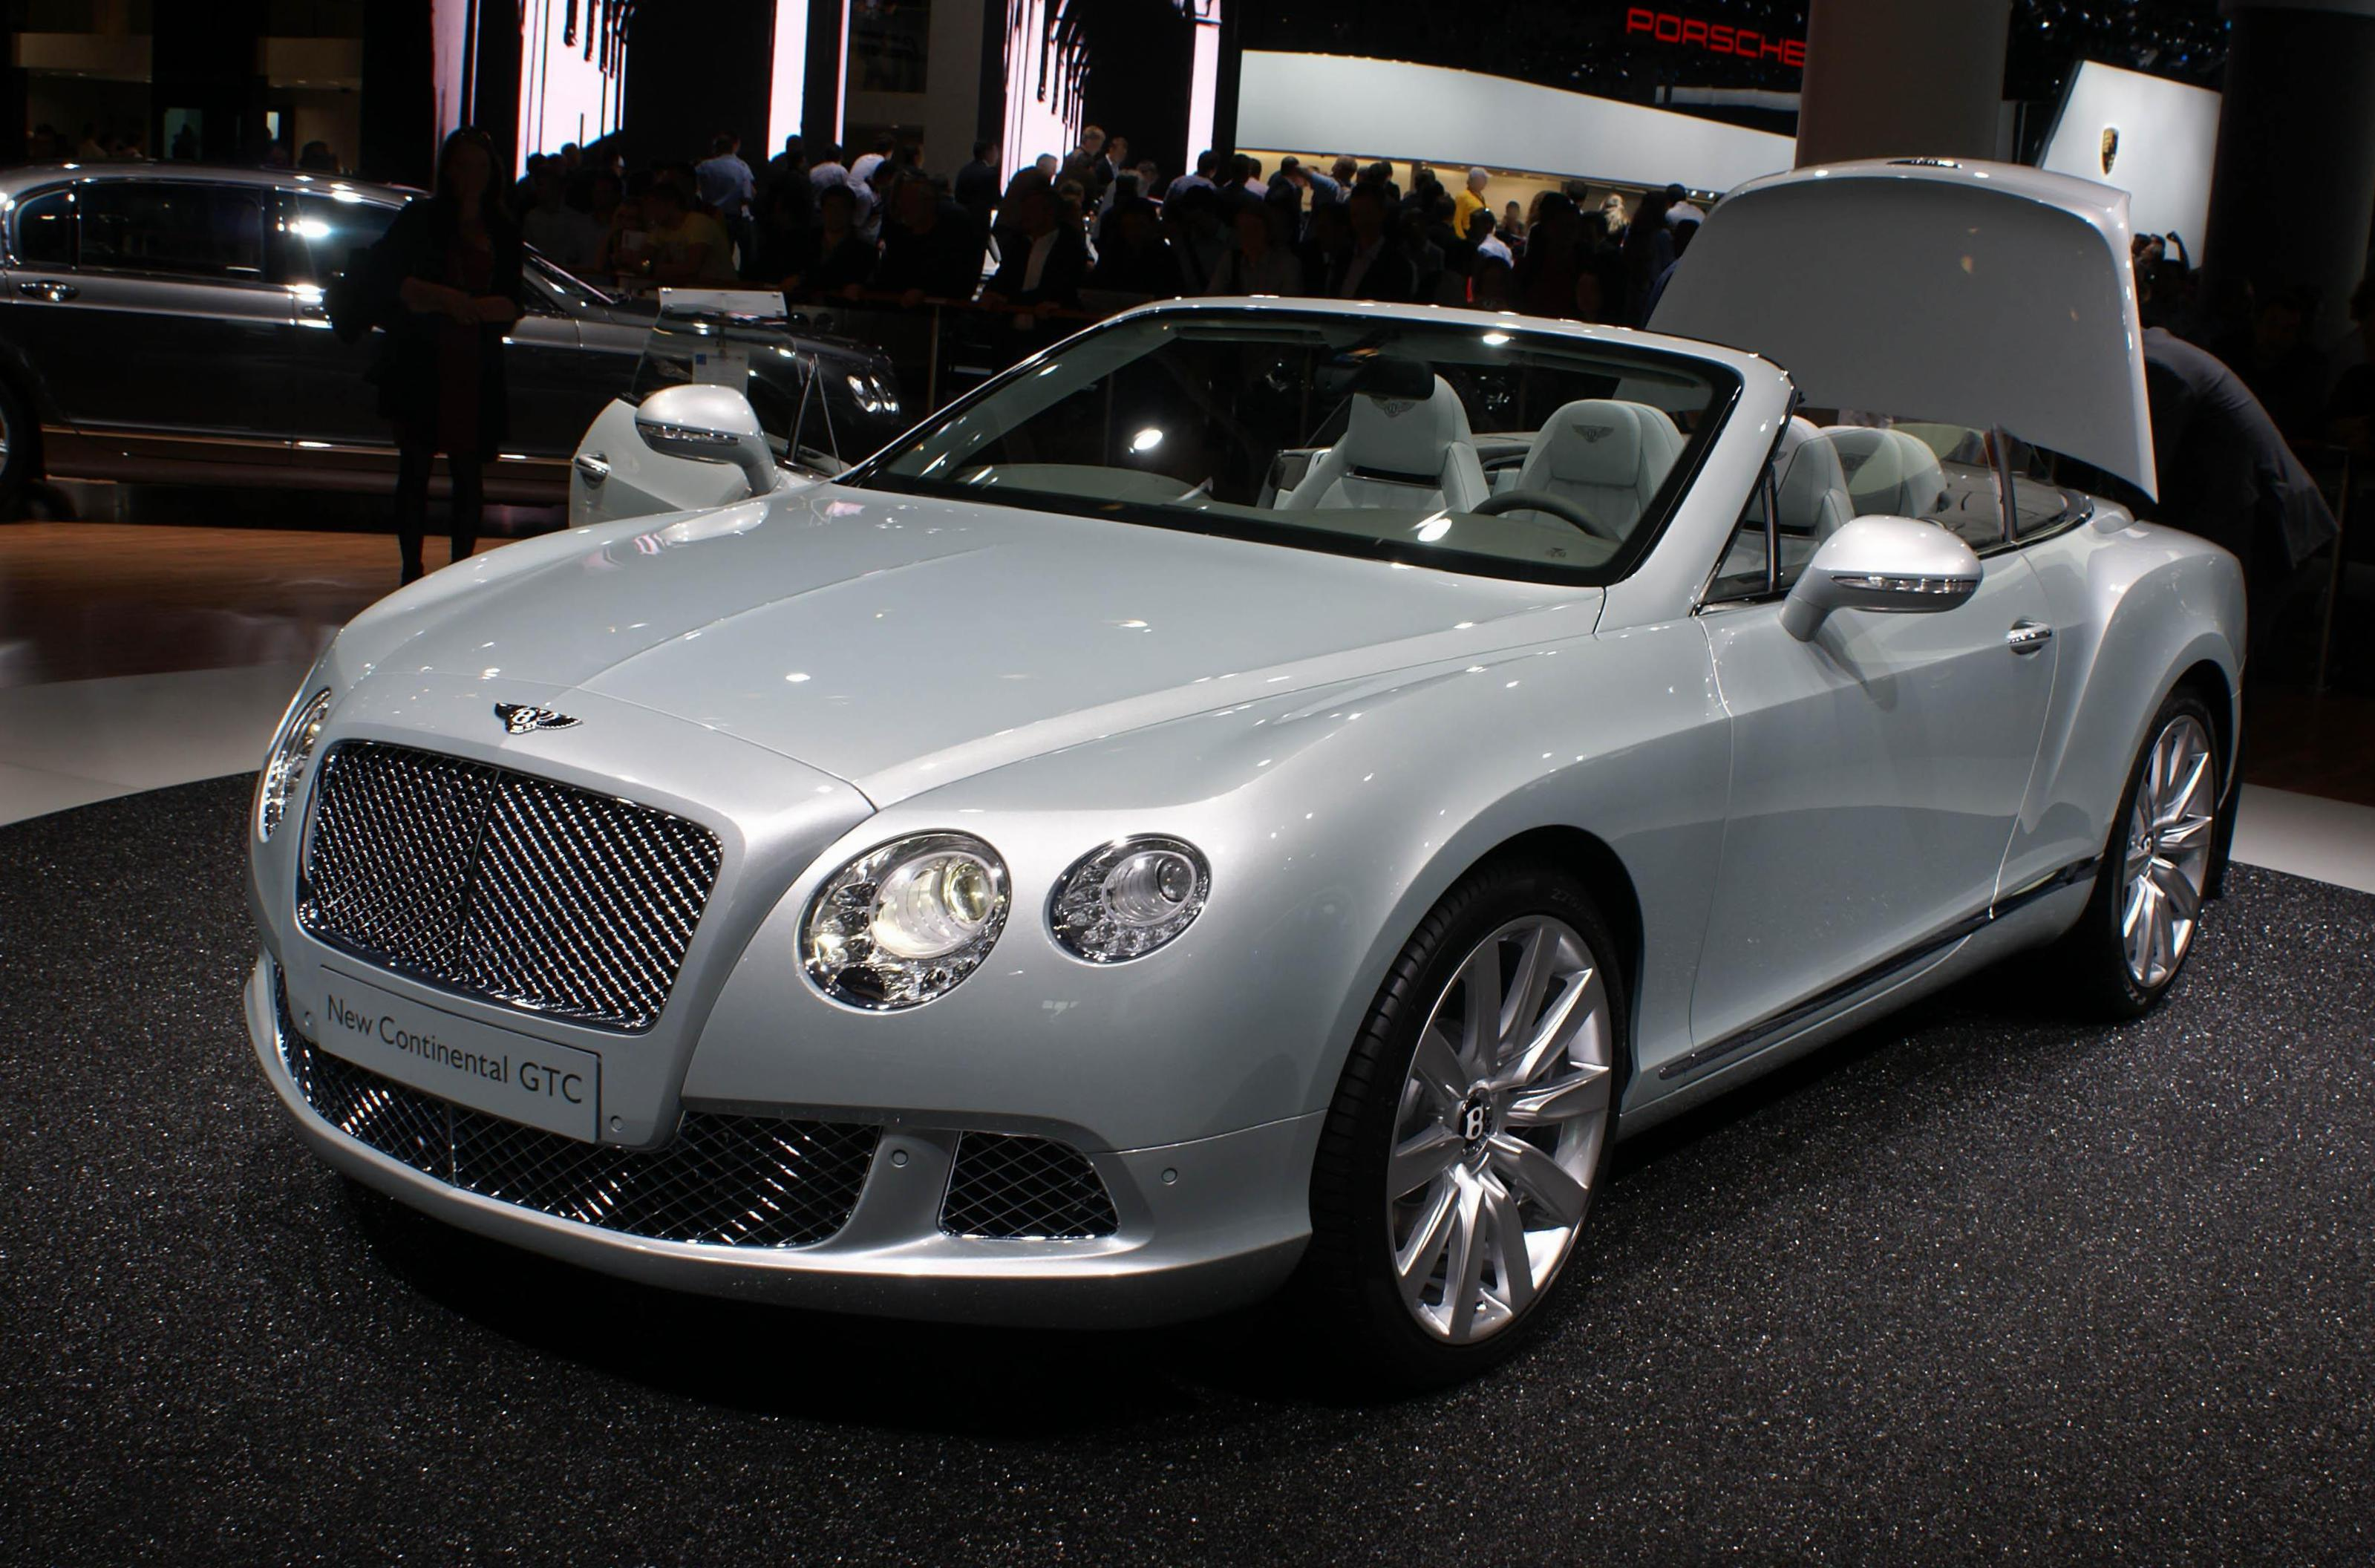 Continental GTC Bentley model 2007